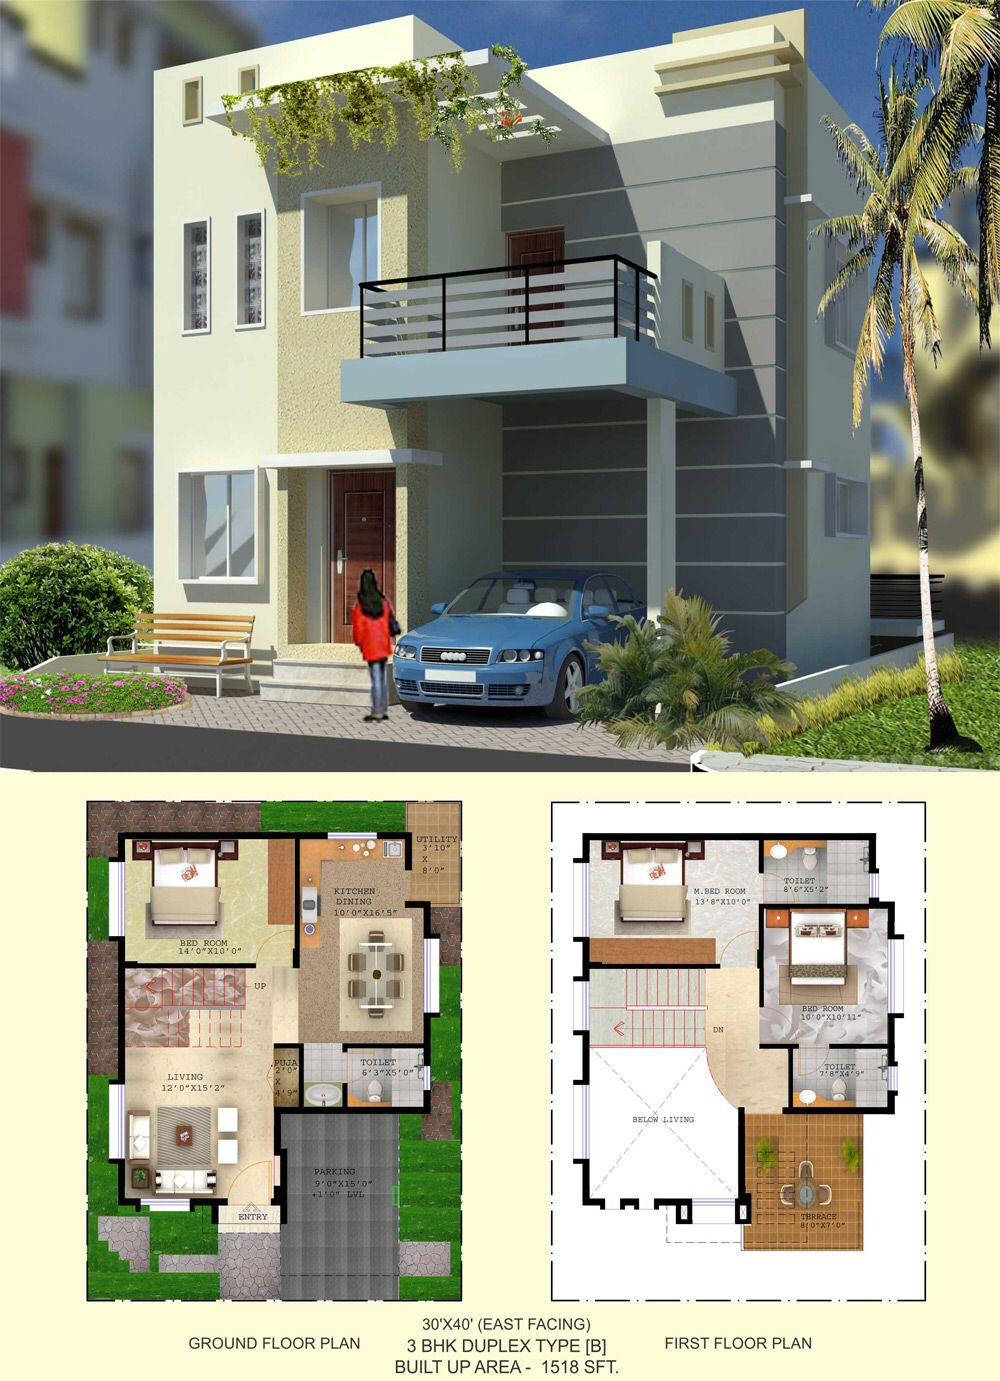 Image from for Duplex house plans 30x40